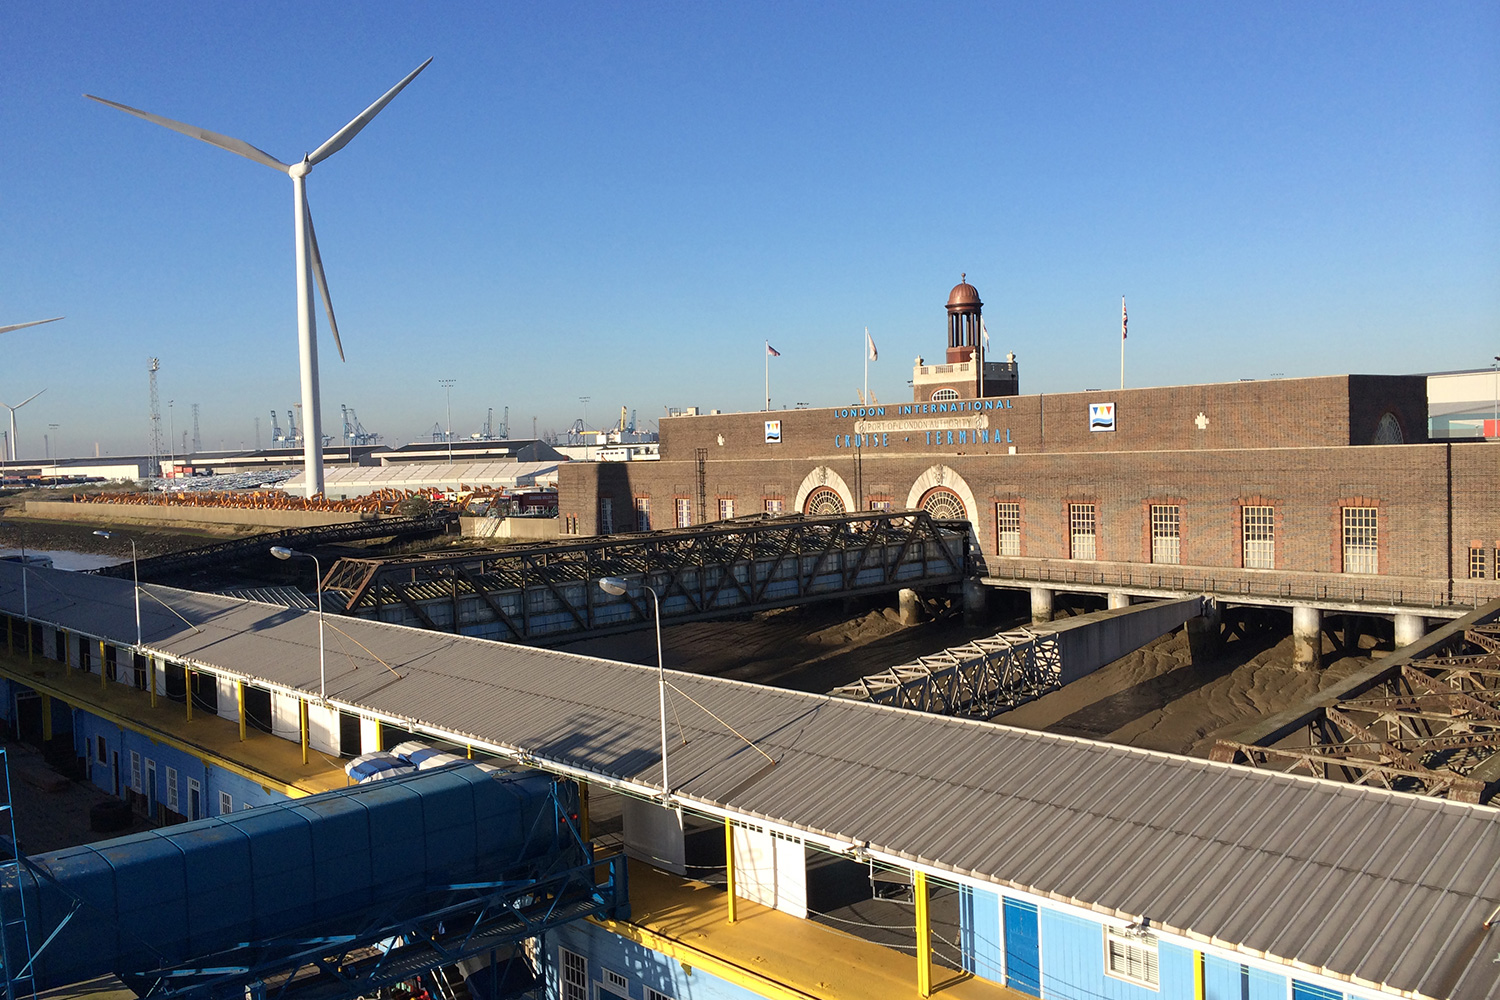 Port of Tilbury – Community Open Day *FREE EVENT*